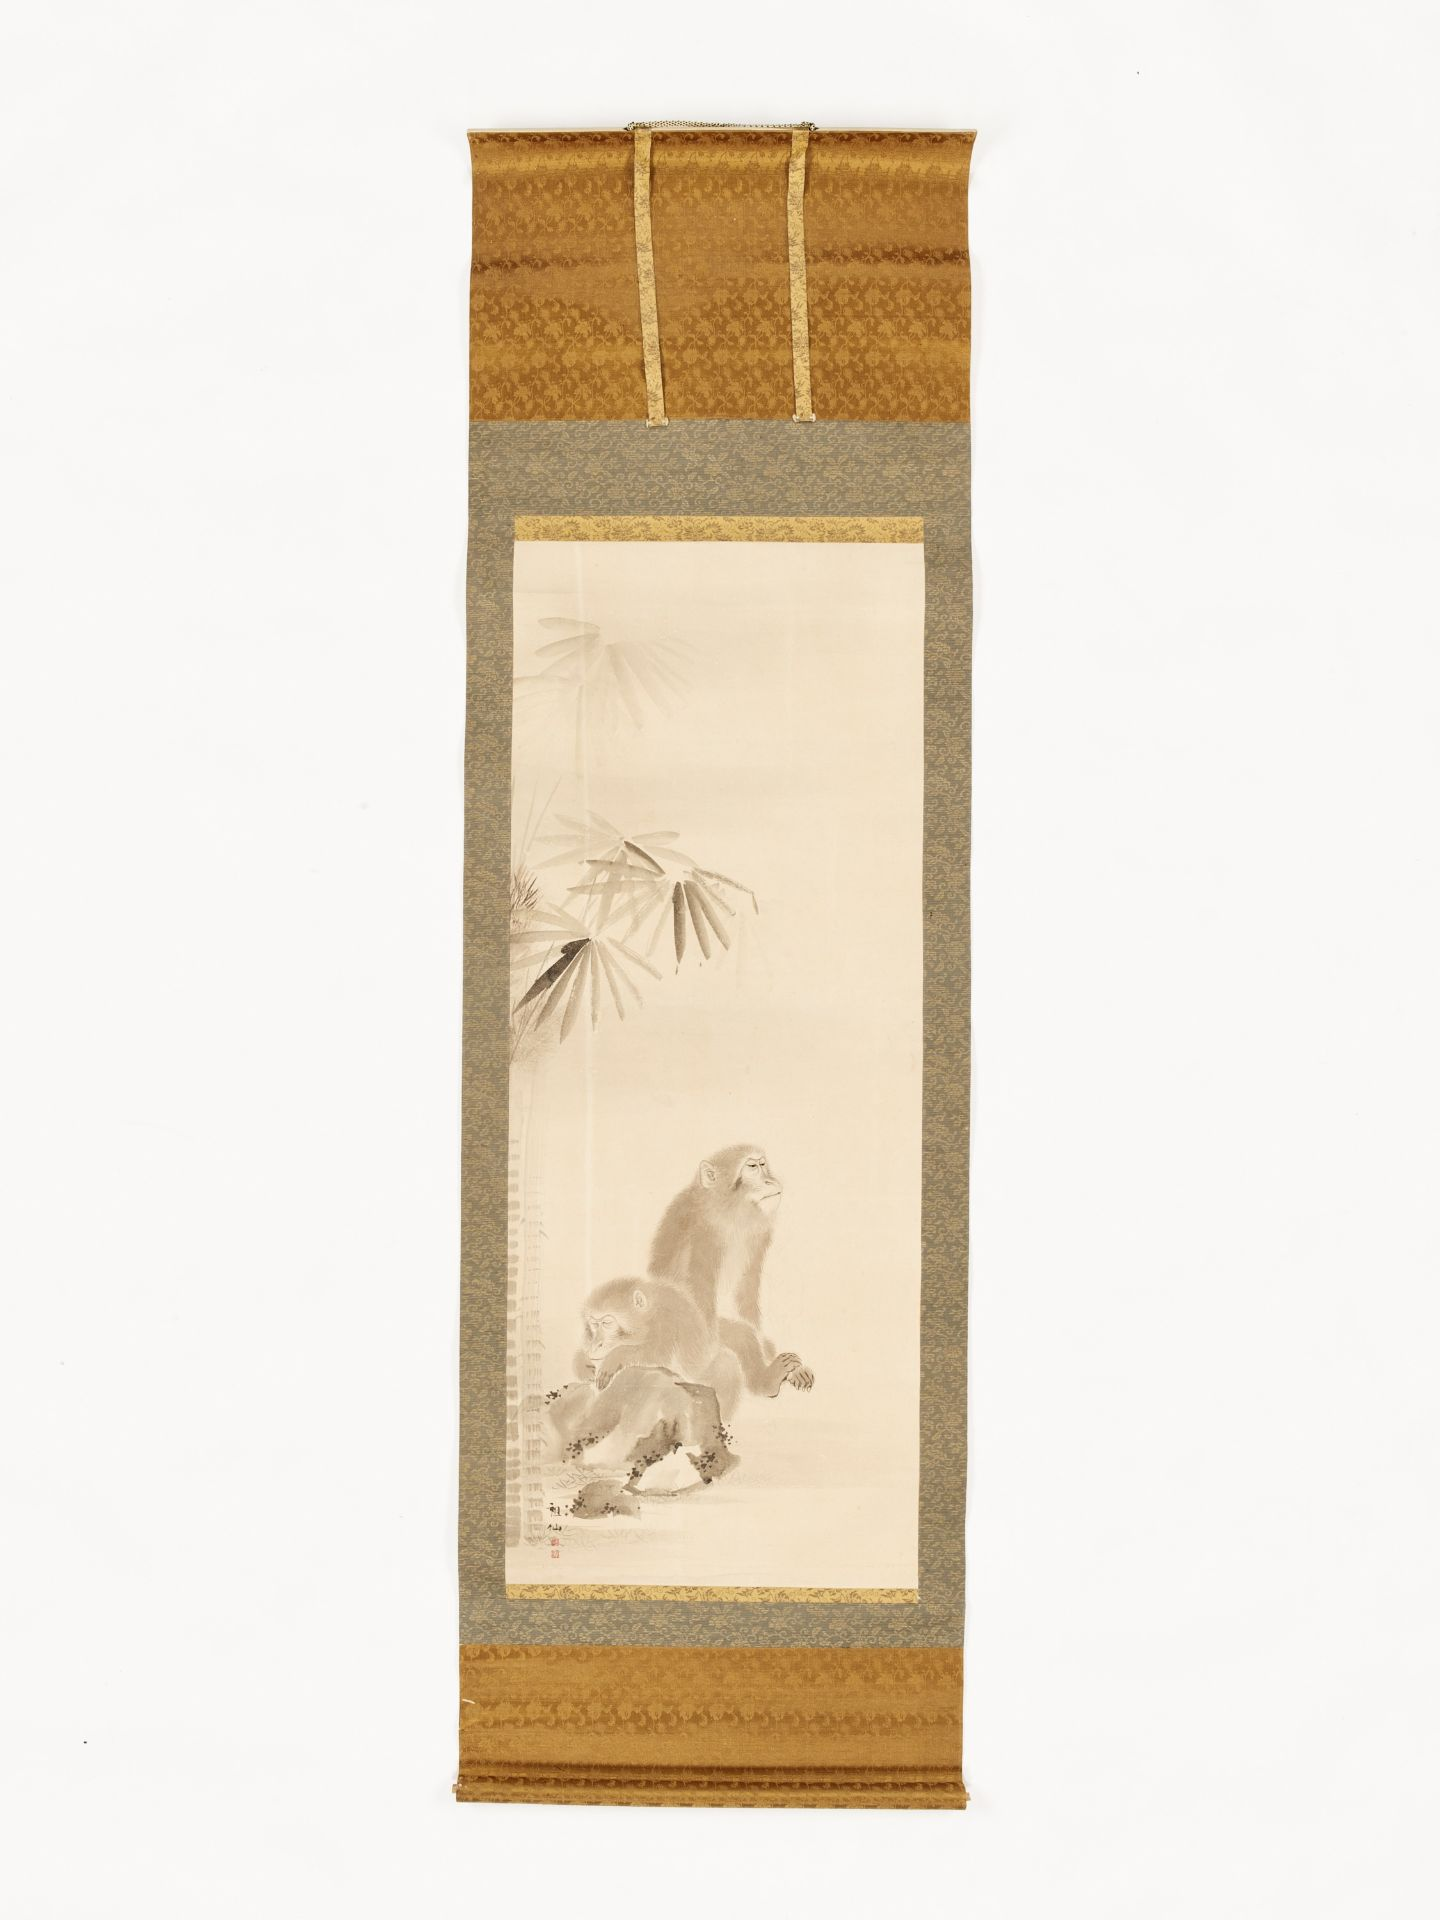 MORI SOSEN: A FINE SCROLL PAINTING OF TWO MONKEYS - Image 4 of 8